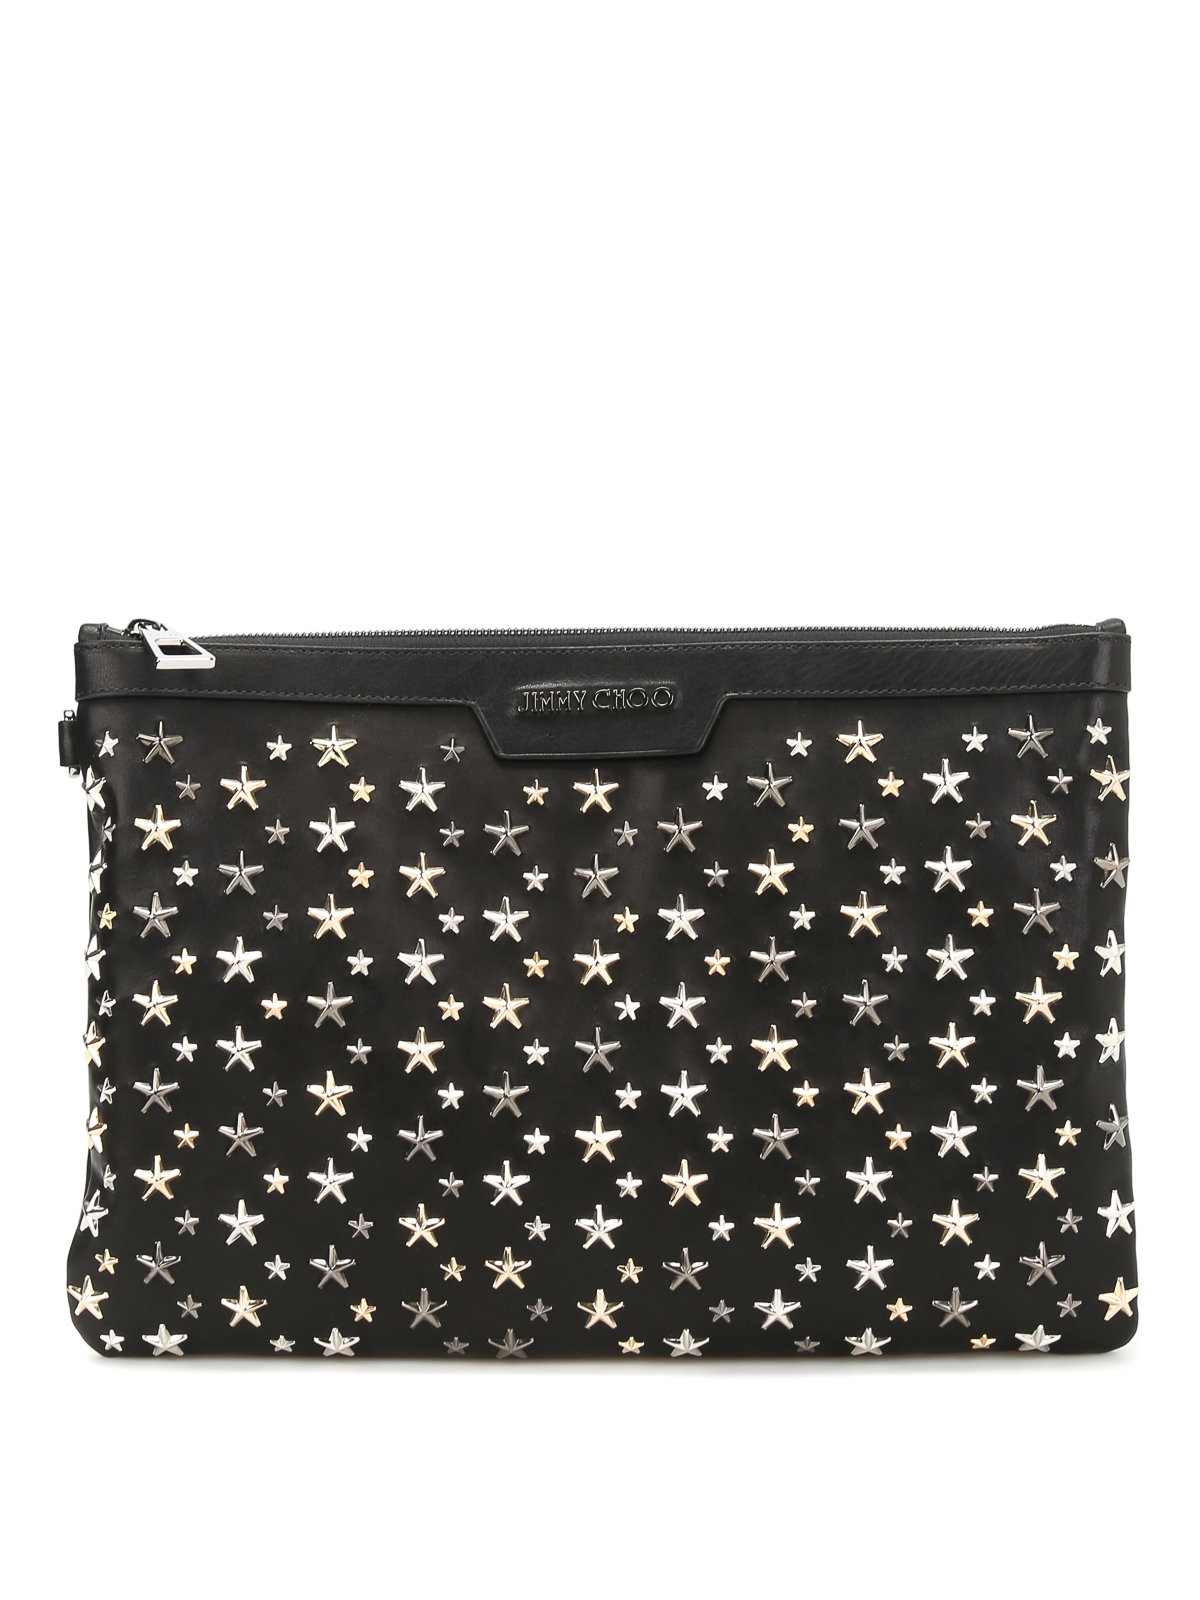 derek metal stars leather clutch by jimmy choo clutches ikrix. Black Bedroom Furniture Sets. Home Design Ideas